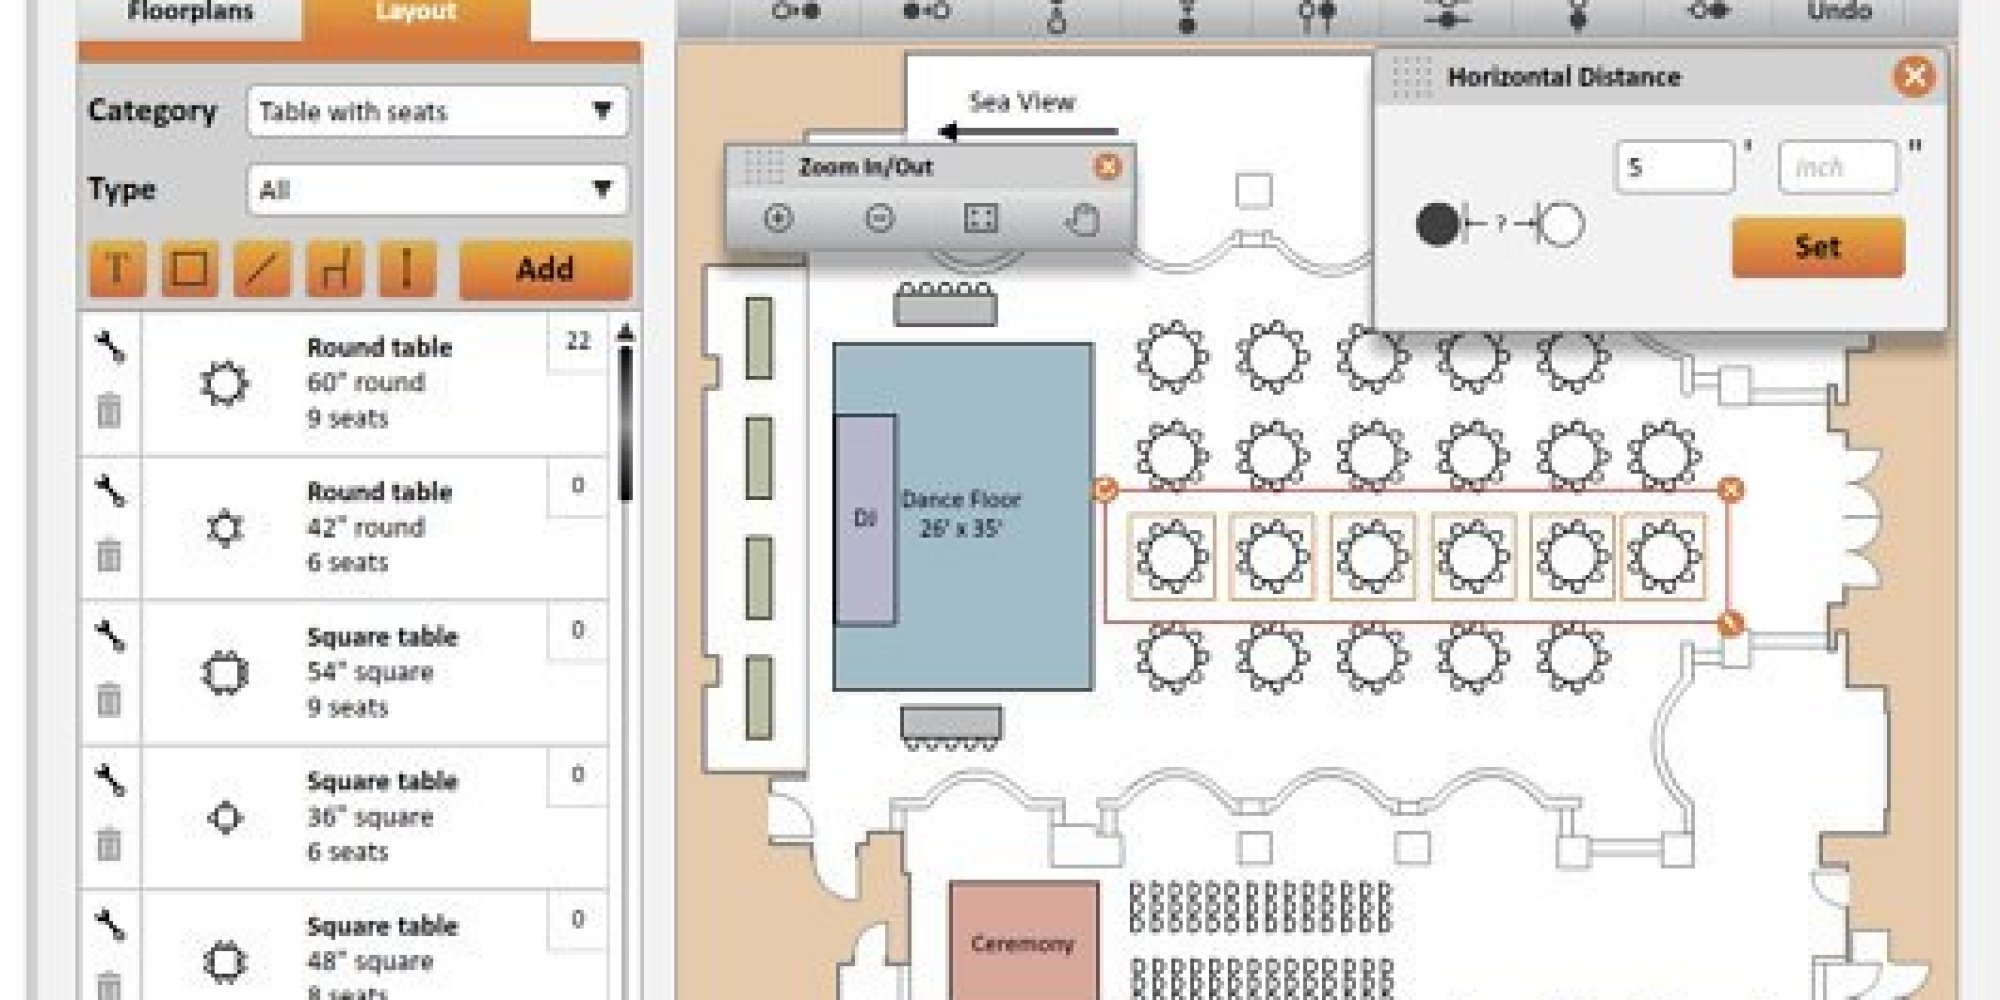 The Best Digital Seating Charts For Wedding Planning HuffPost - Event seating chart template